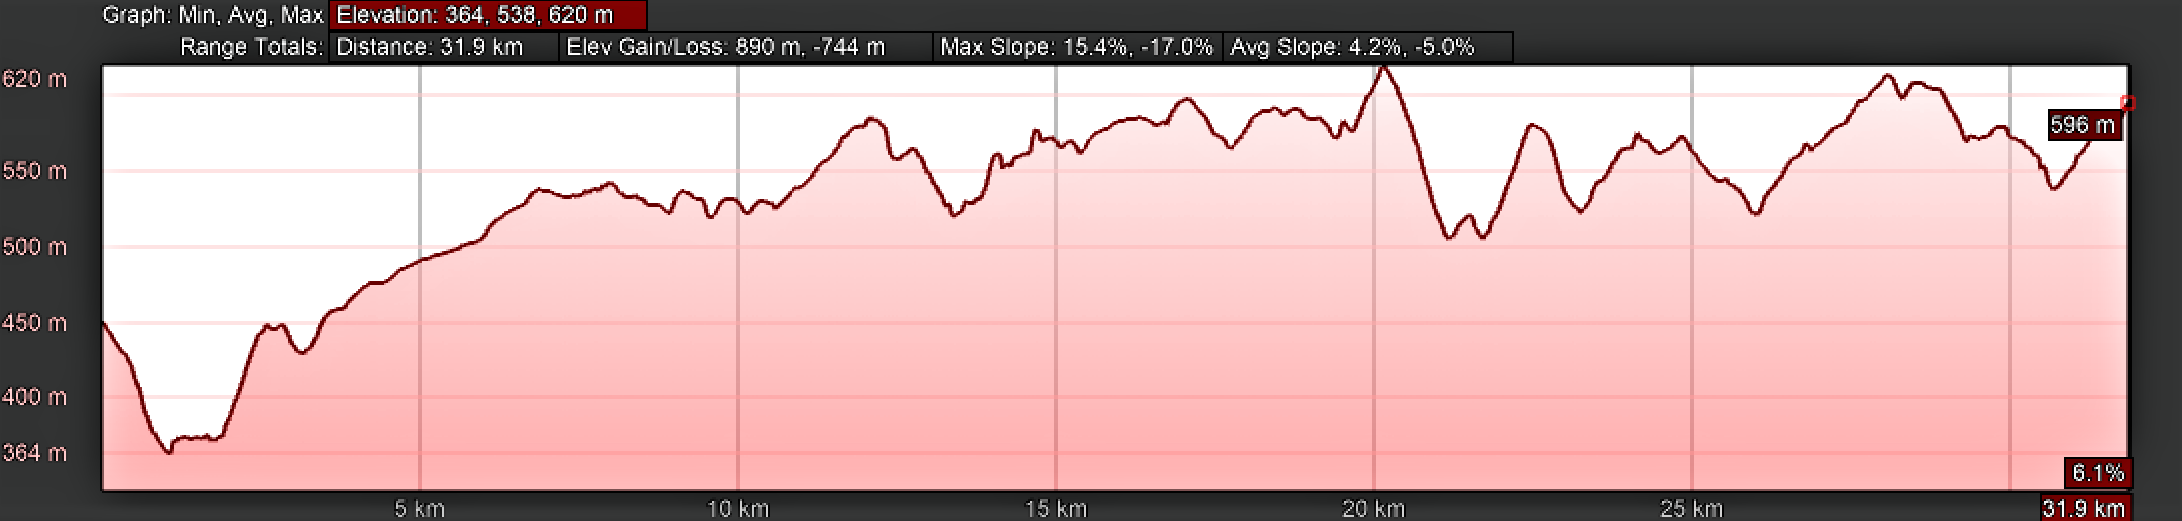 Elevation Profile, Lugo to As Seixas